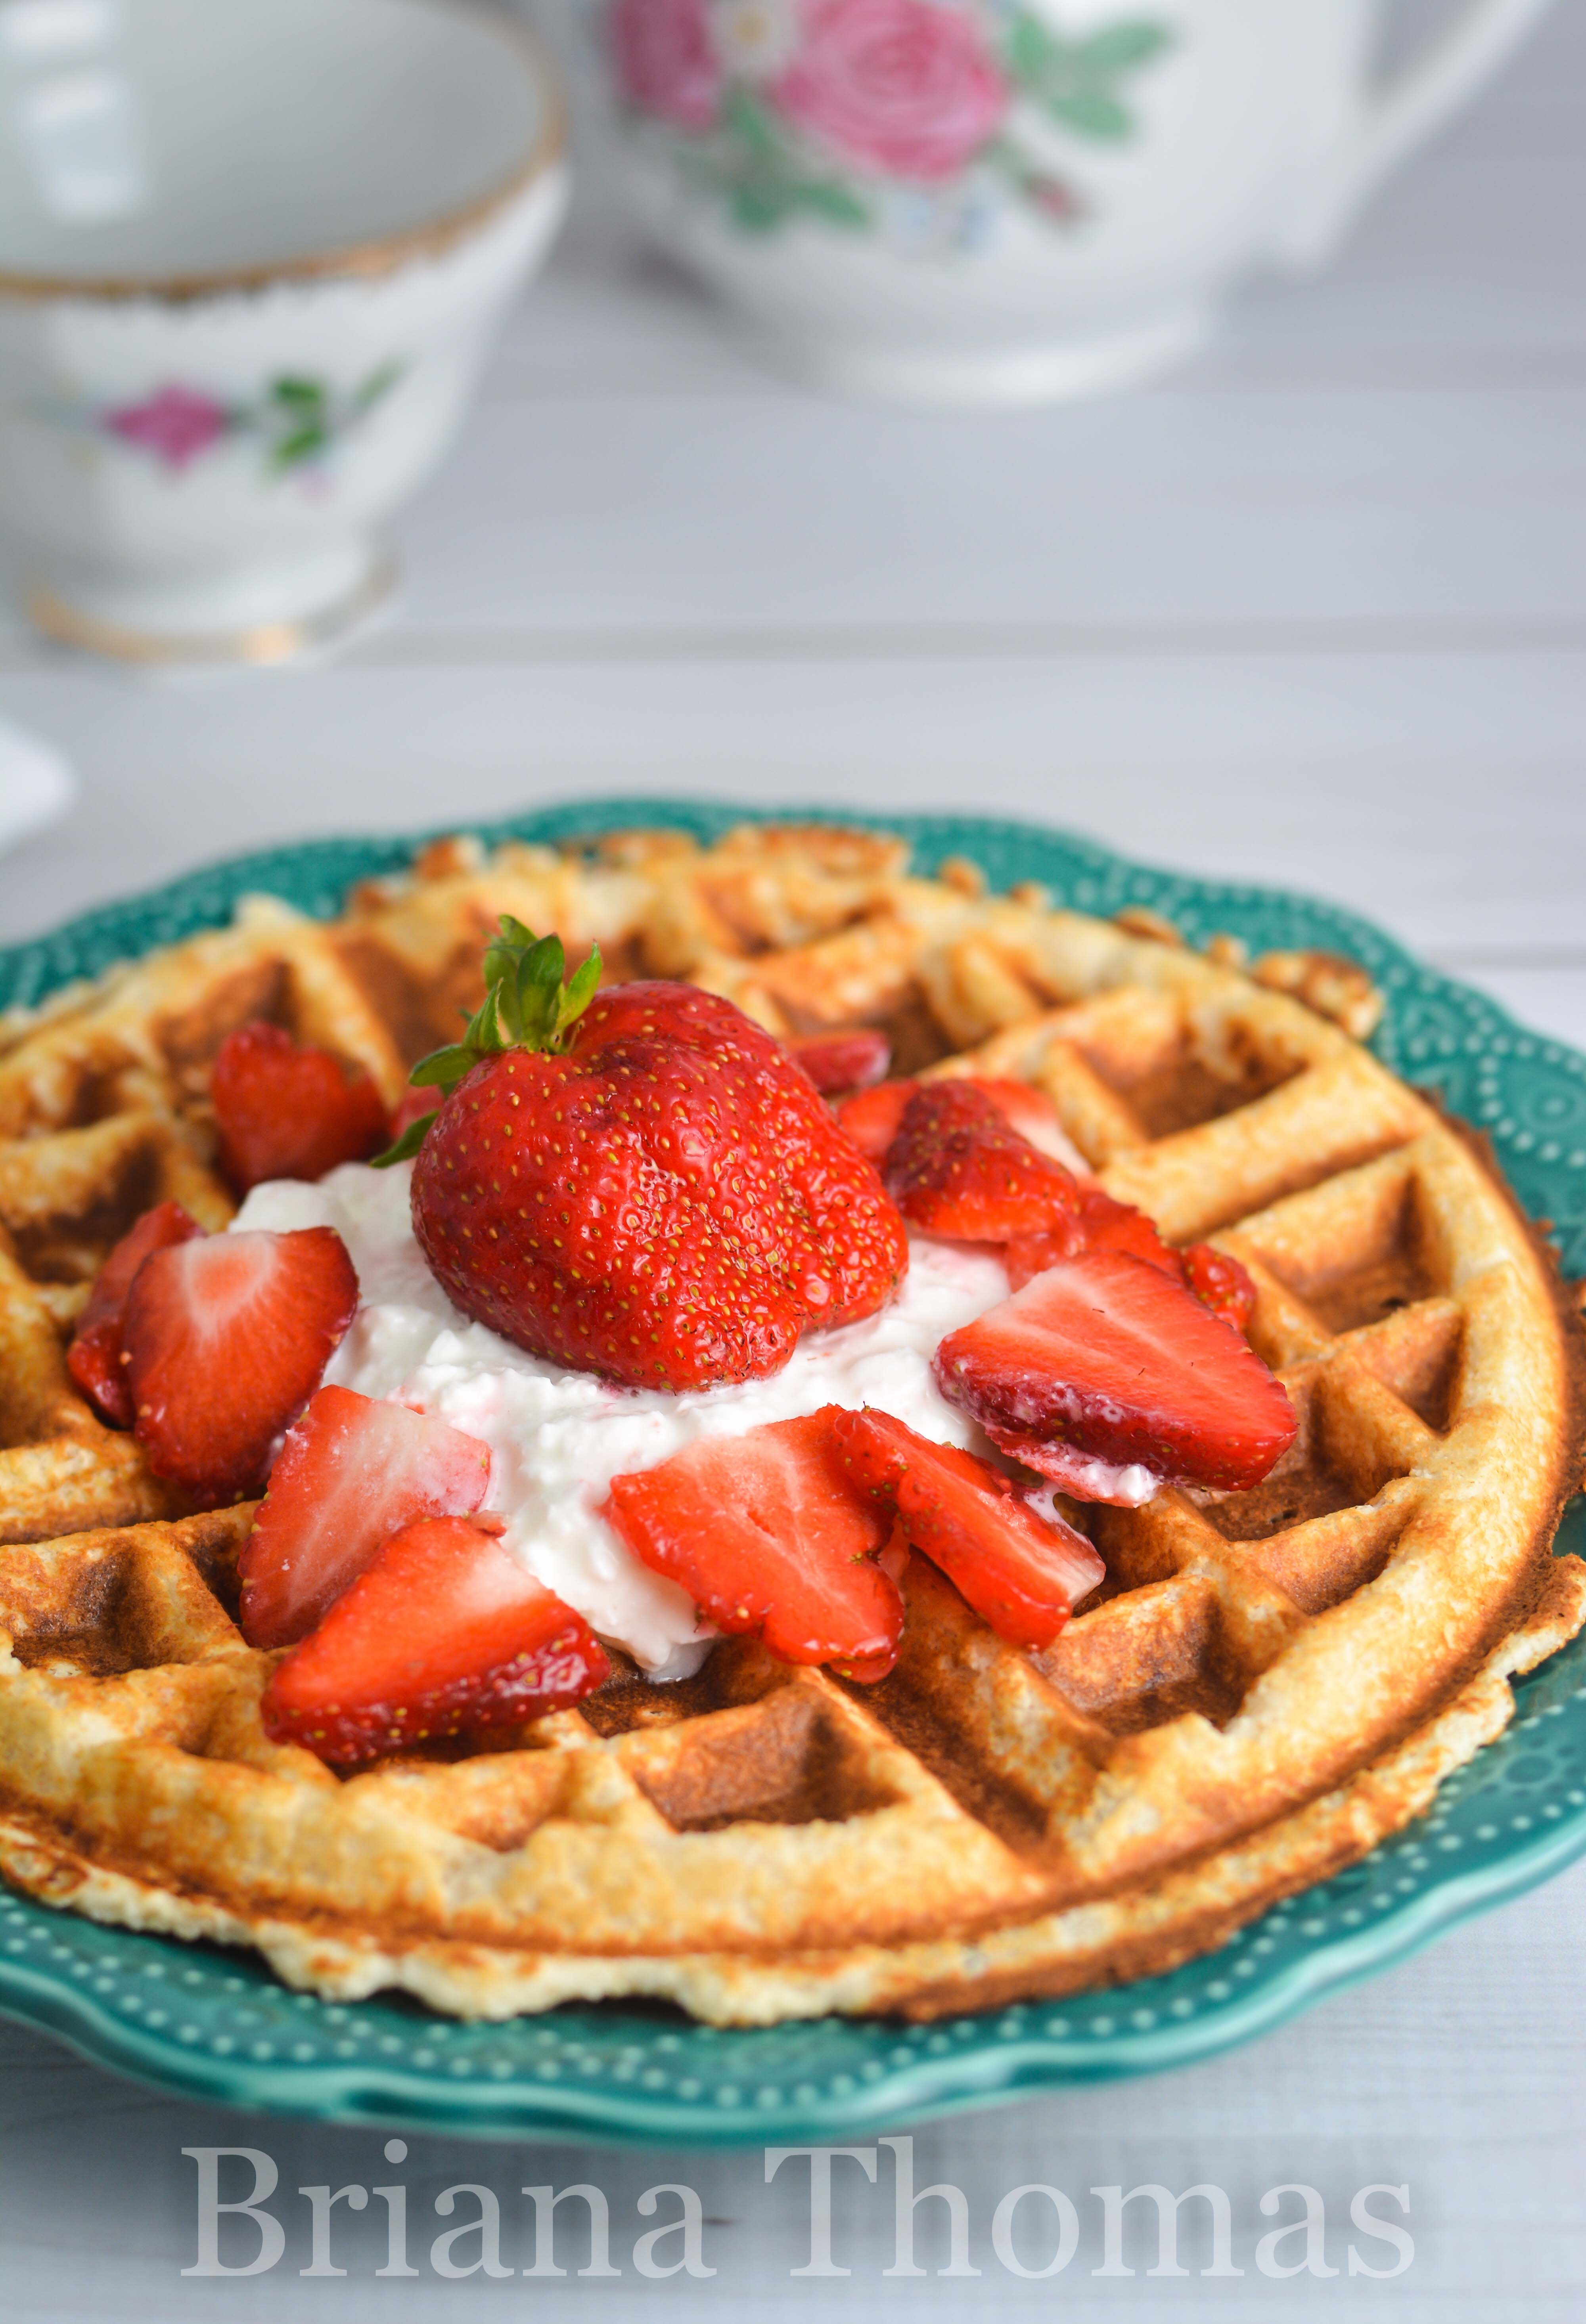 This Strawberry Shortcake Waffle is pretty low-calorie and happens to be a Fuel Pull for Trim Healthy Mamas! Low carb, low fat, sugar free, gluten/nut free